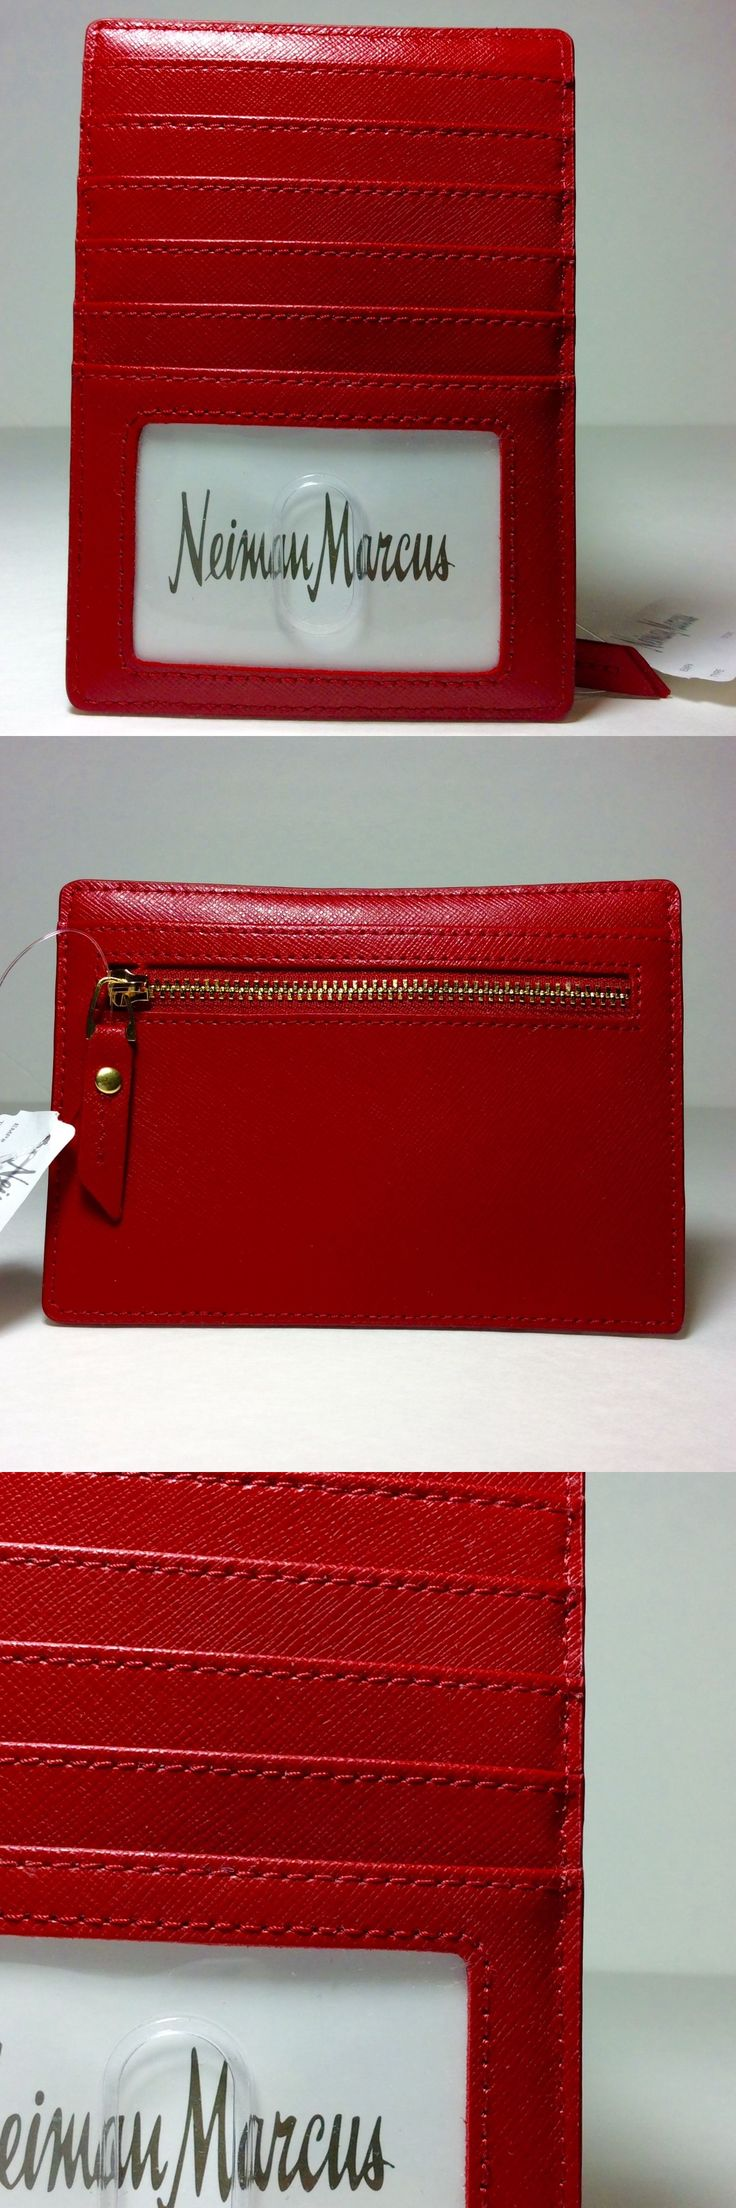 Business and Credit Card Cases 105544: Neiman Marcus Women S Card Case Zipper Coin Case Red.Nwt. -> BUY IT NOW ONLY: $49.95 on eBay!